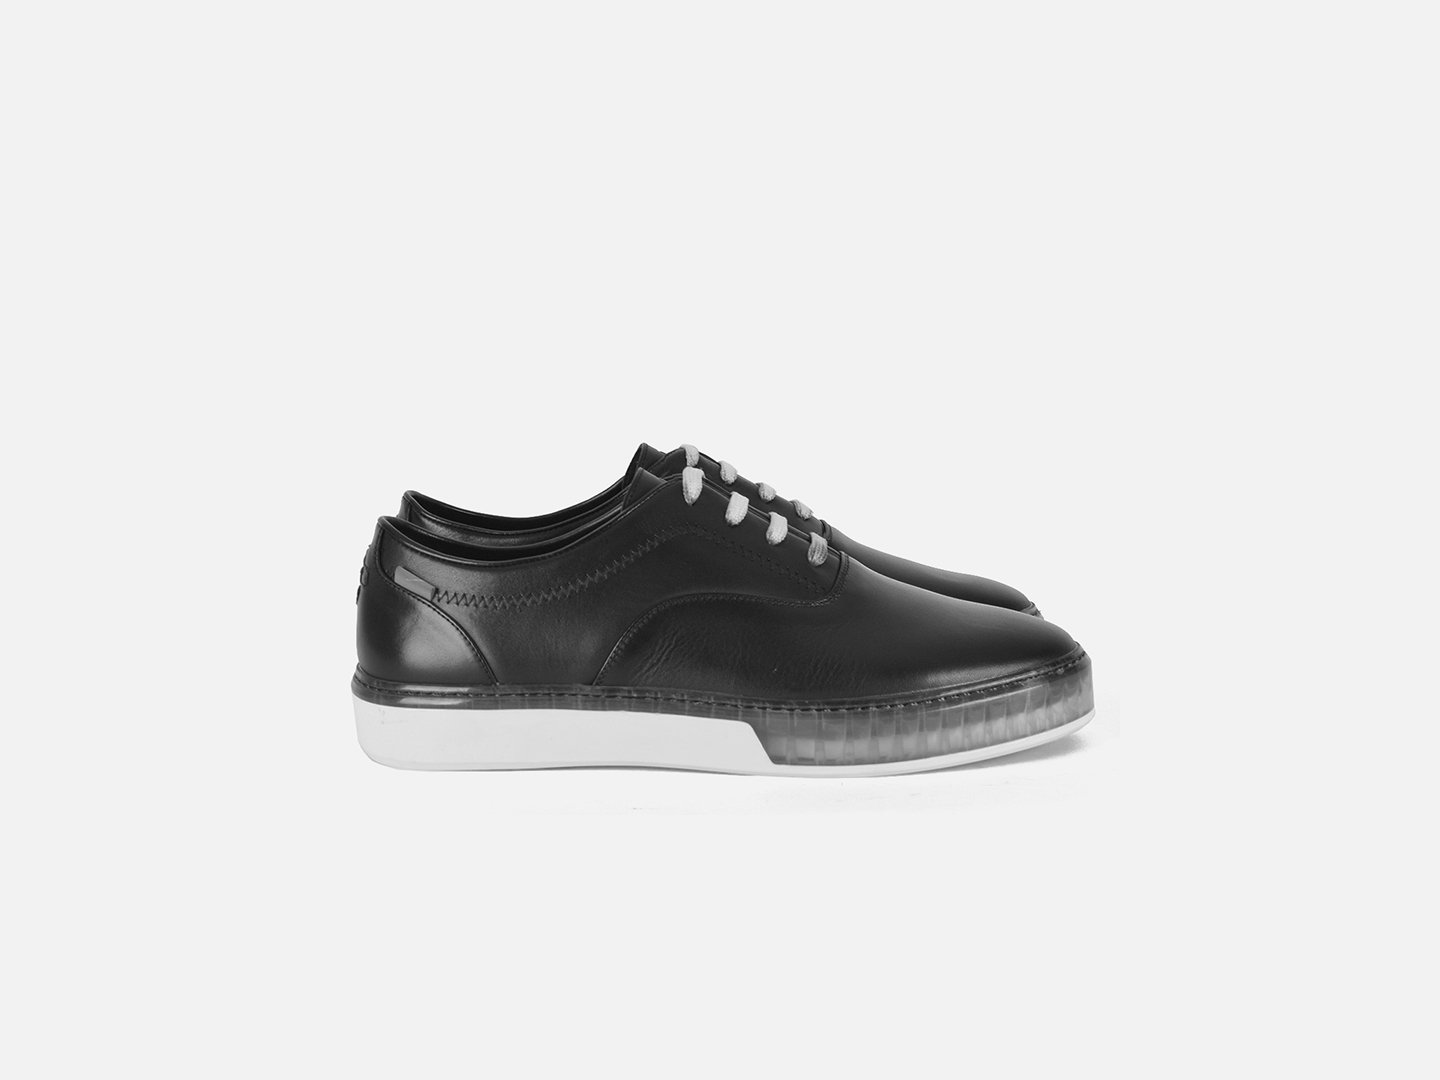 pregis wing black leather cupsole sneakers designed in London